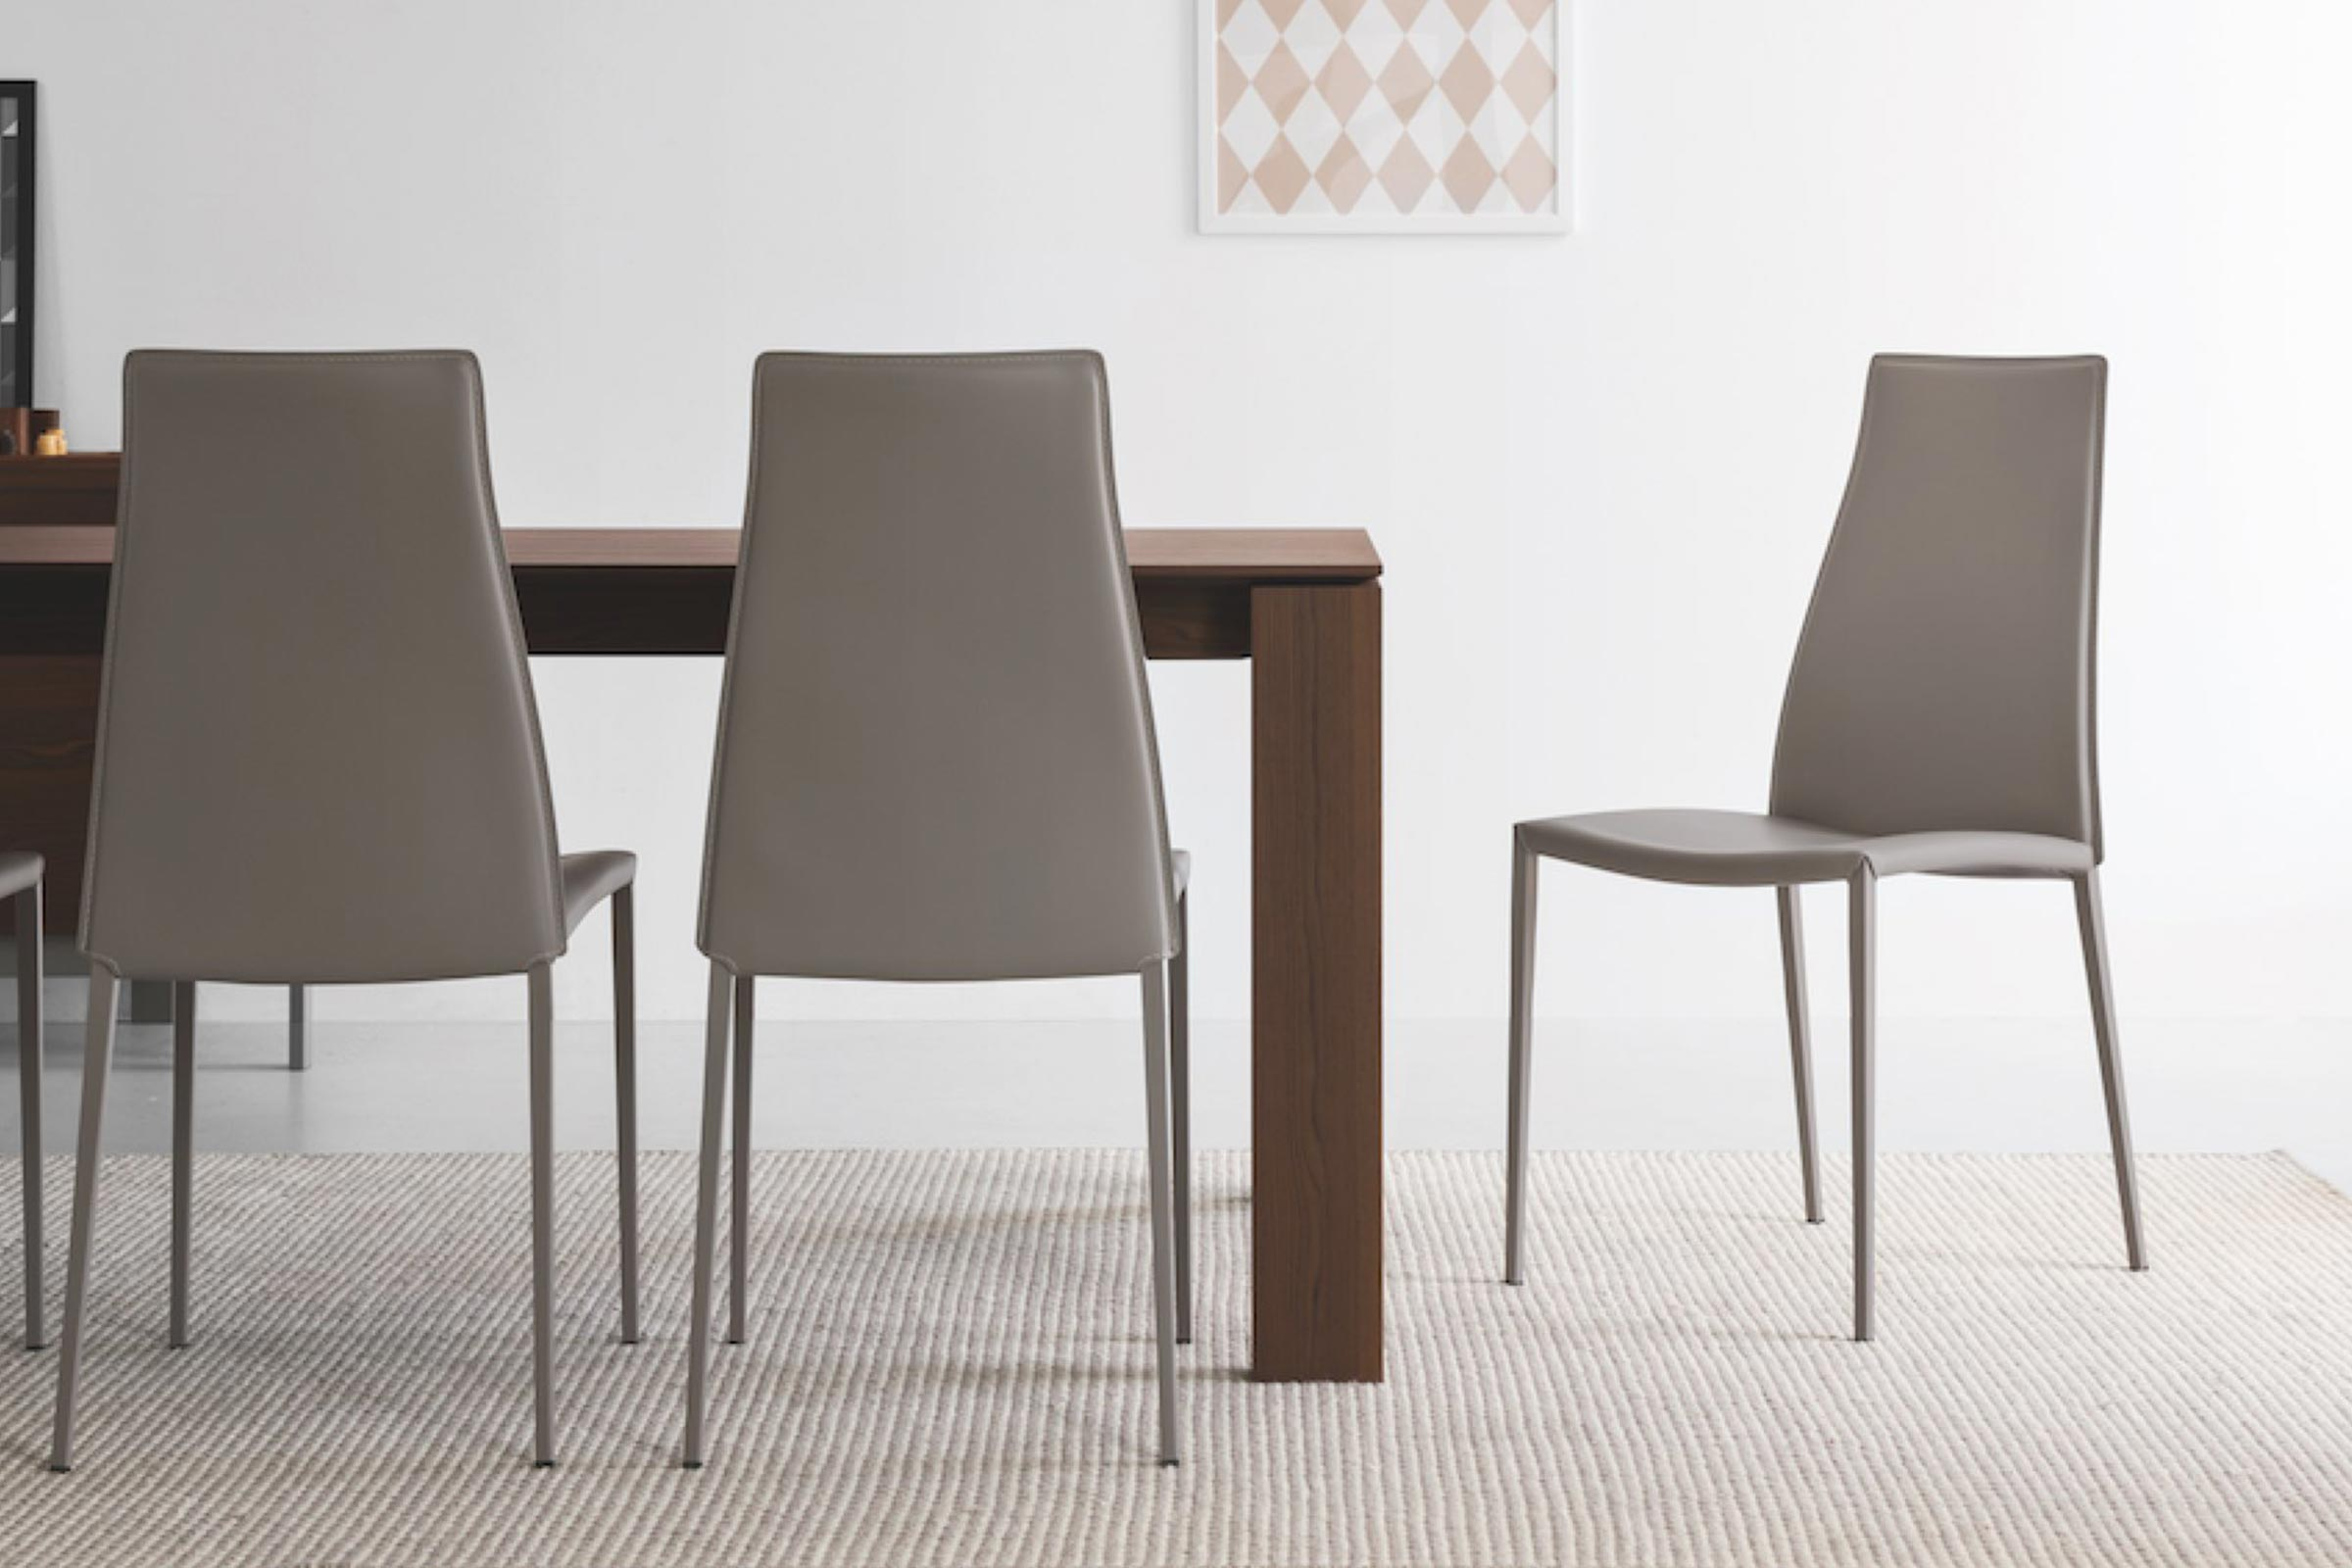 Calligaris Dining Chairs Aida Minimalist Leather Upholstered Chair Calligaris Toronto Vaughan